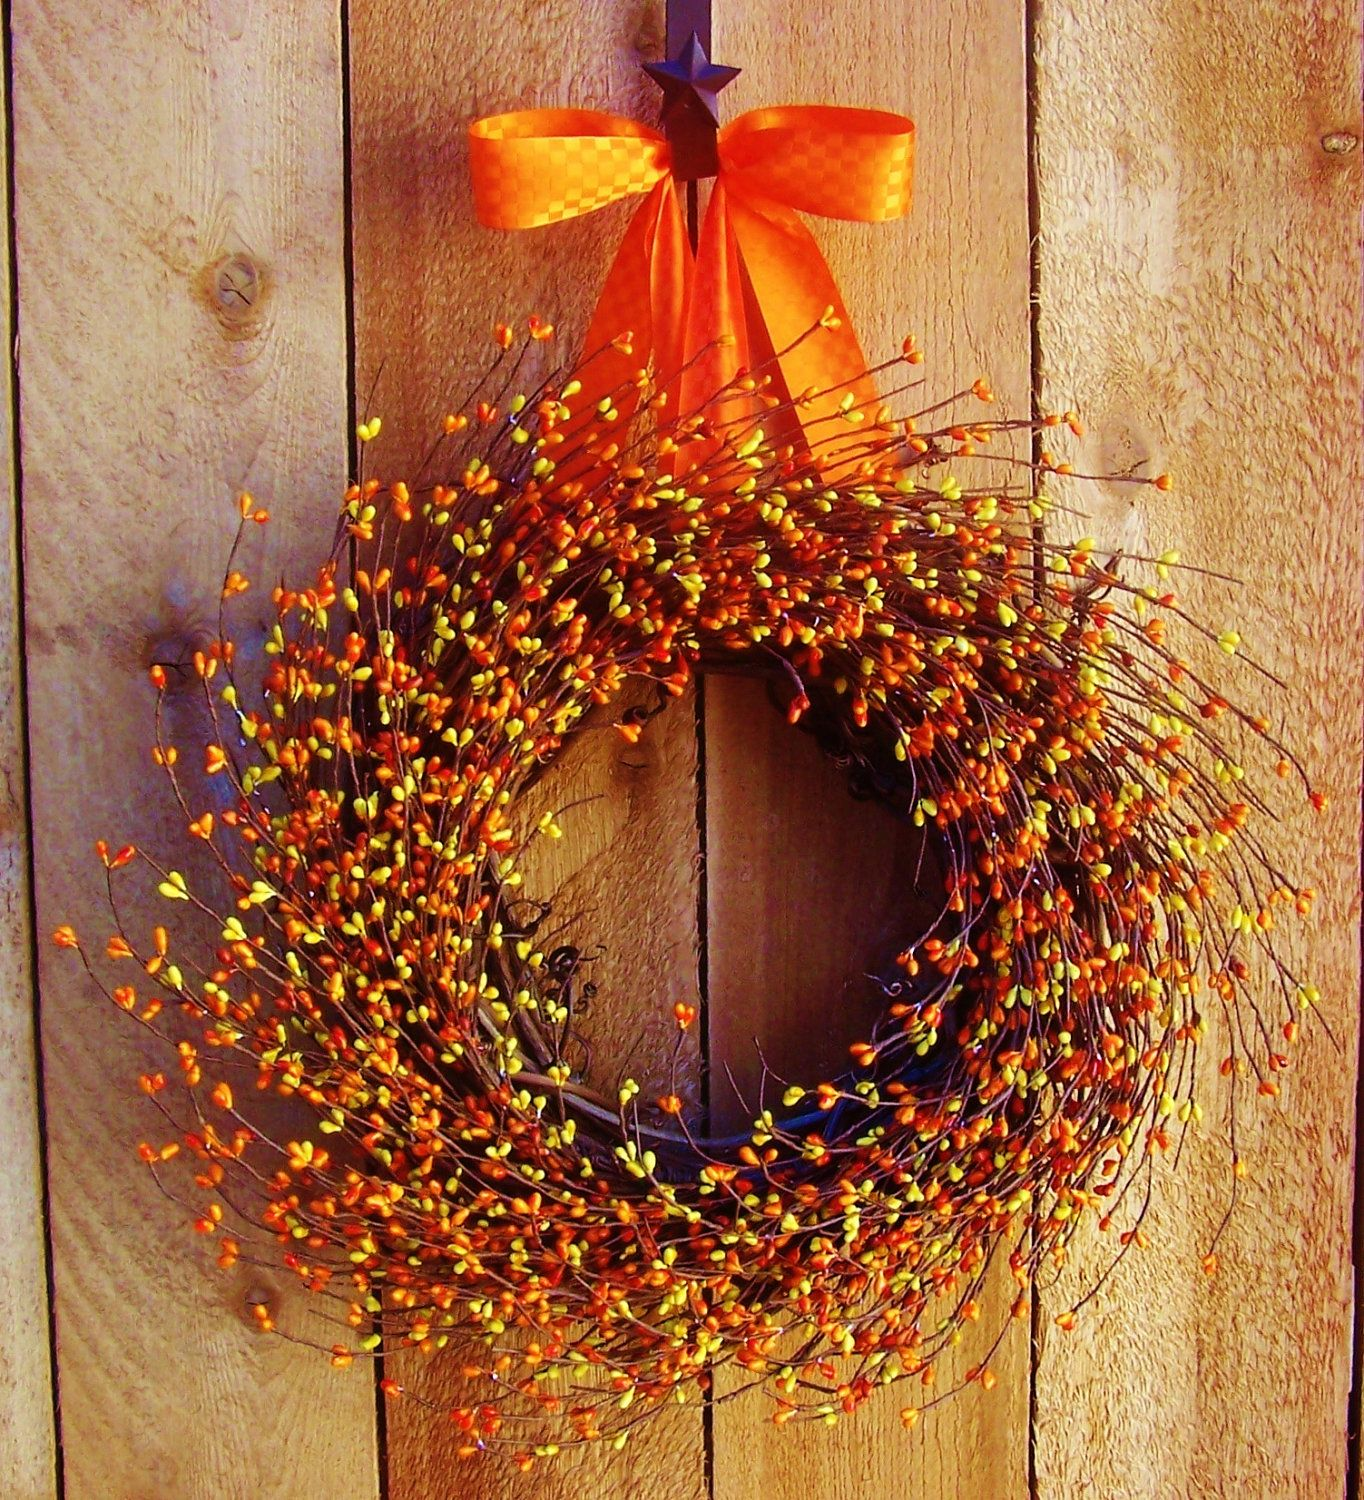 Beautiful Fall Door Wreath Ideas Part - 5: Decoration, Fall Door Wreaths Idea How To Make Fall Door Wreaths By Yourself